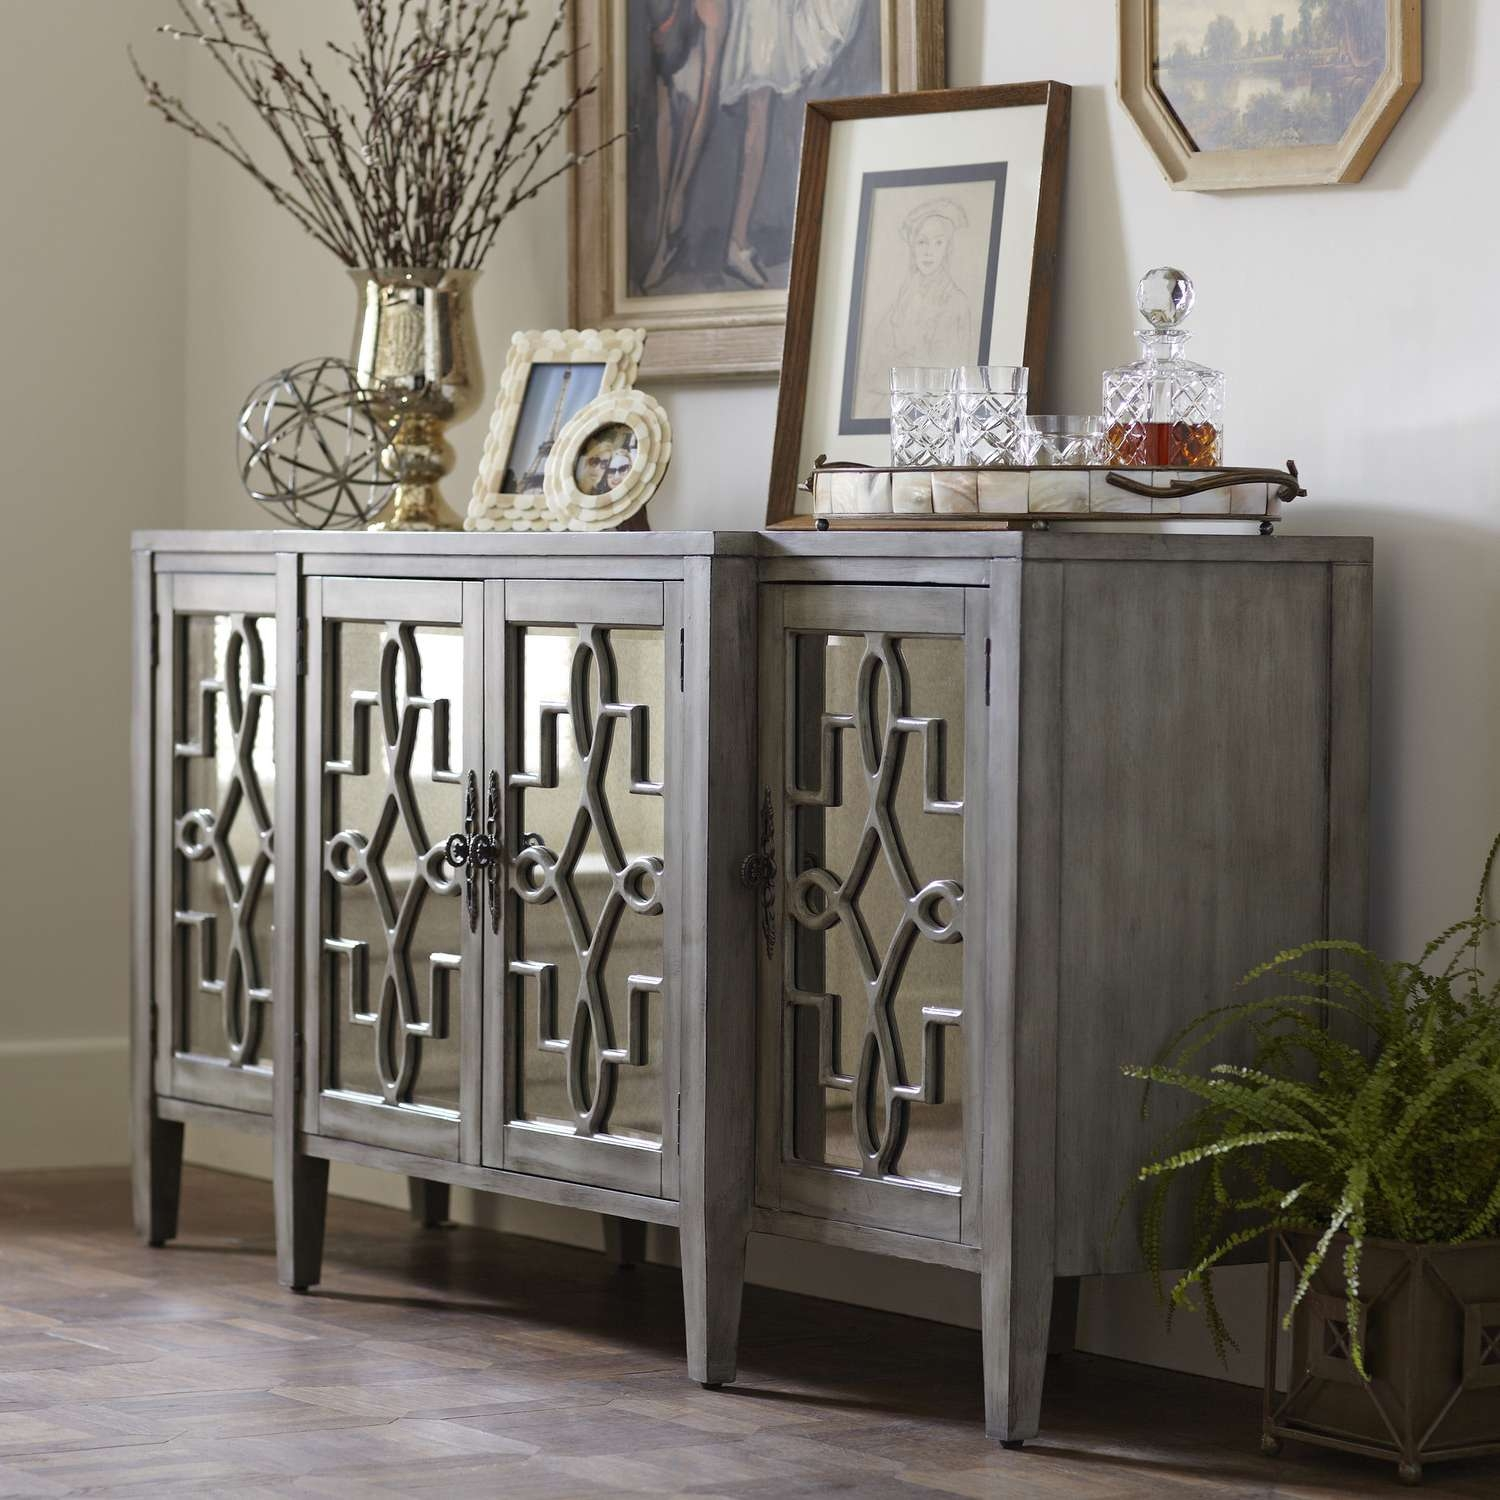 Sideboards Andets Longextra Long Modern Extra Antique Inside Silver Sideboards (View 3 of 20)